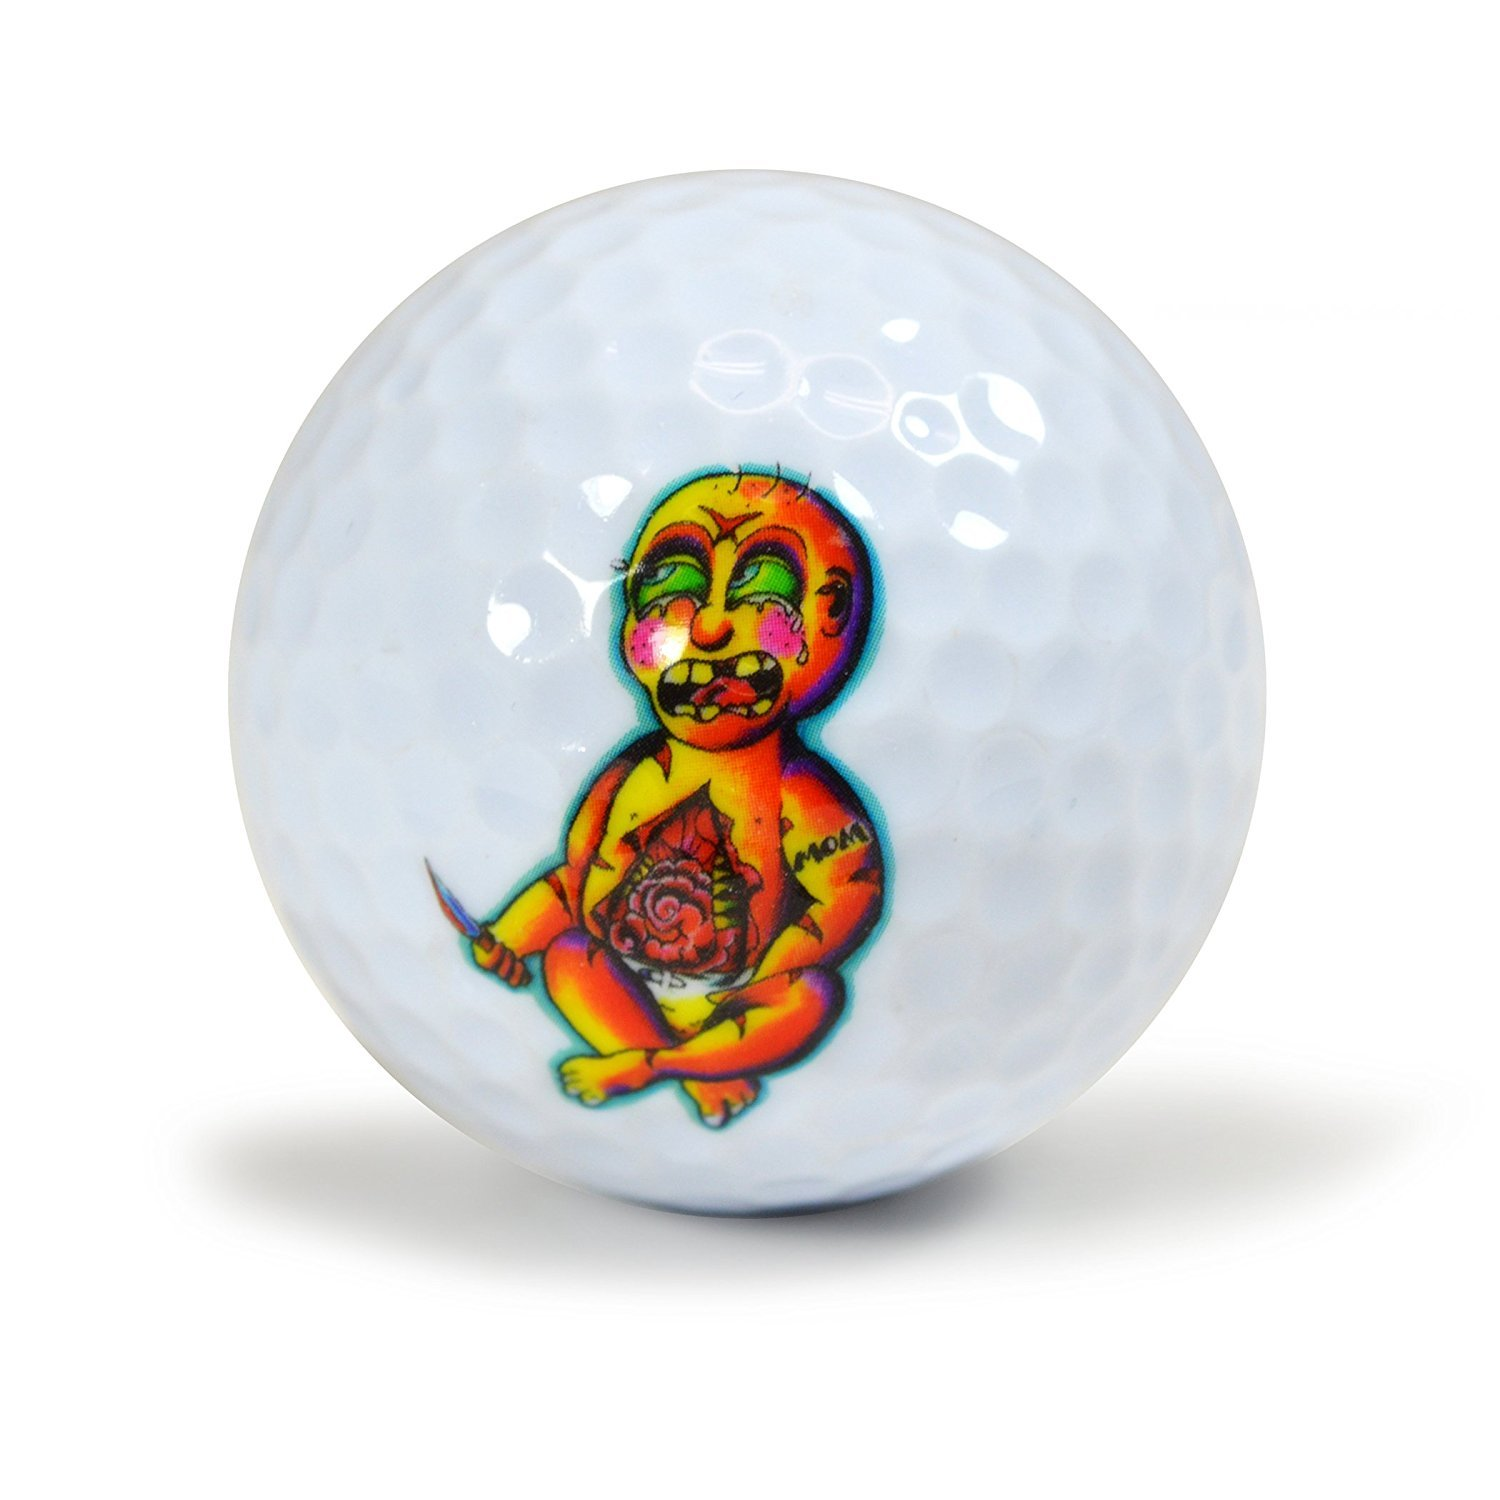 Nicks Underground Novelty Golf Balls - Is It Safe 3 Pack Display Tube #NUG19 [並行輸入品] B071FYHBCP